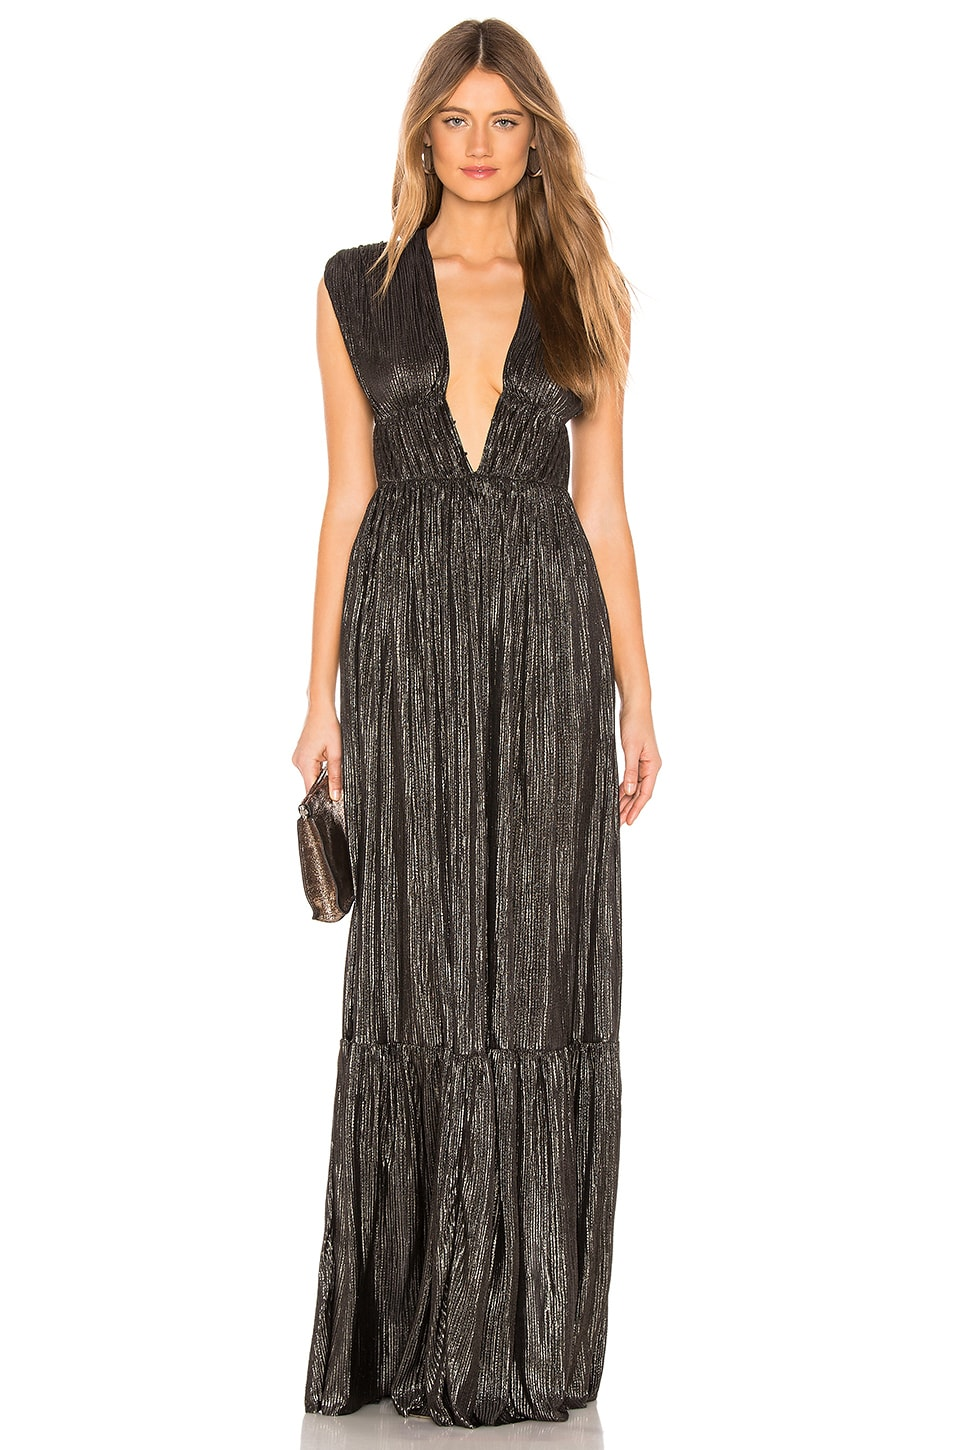 Sabina Musayev Tyler Dress in Black Metallic